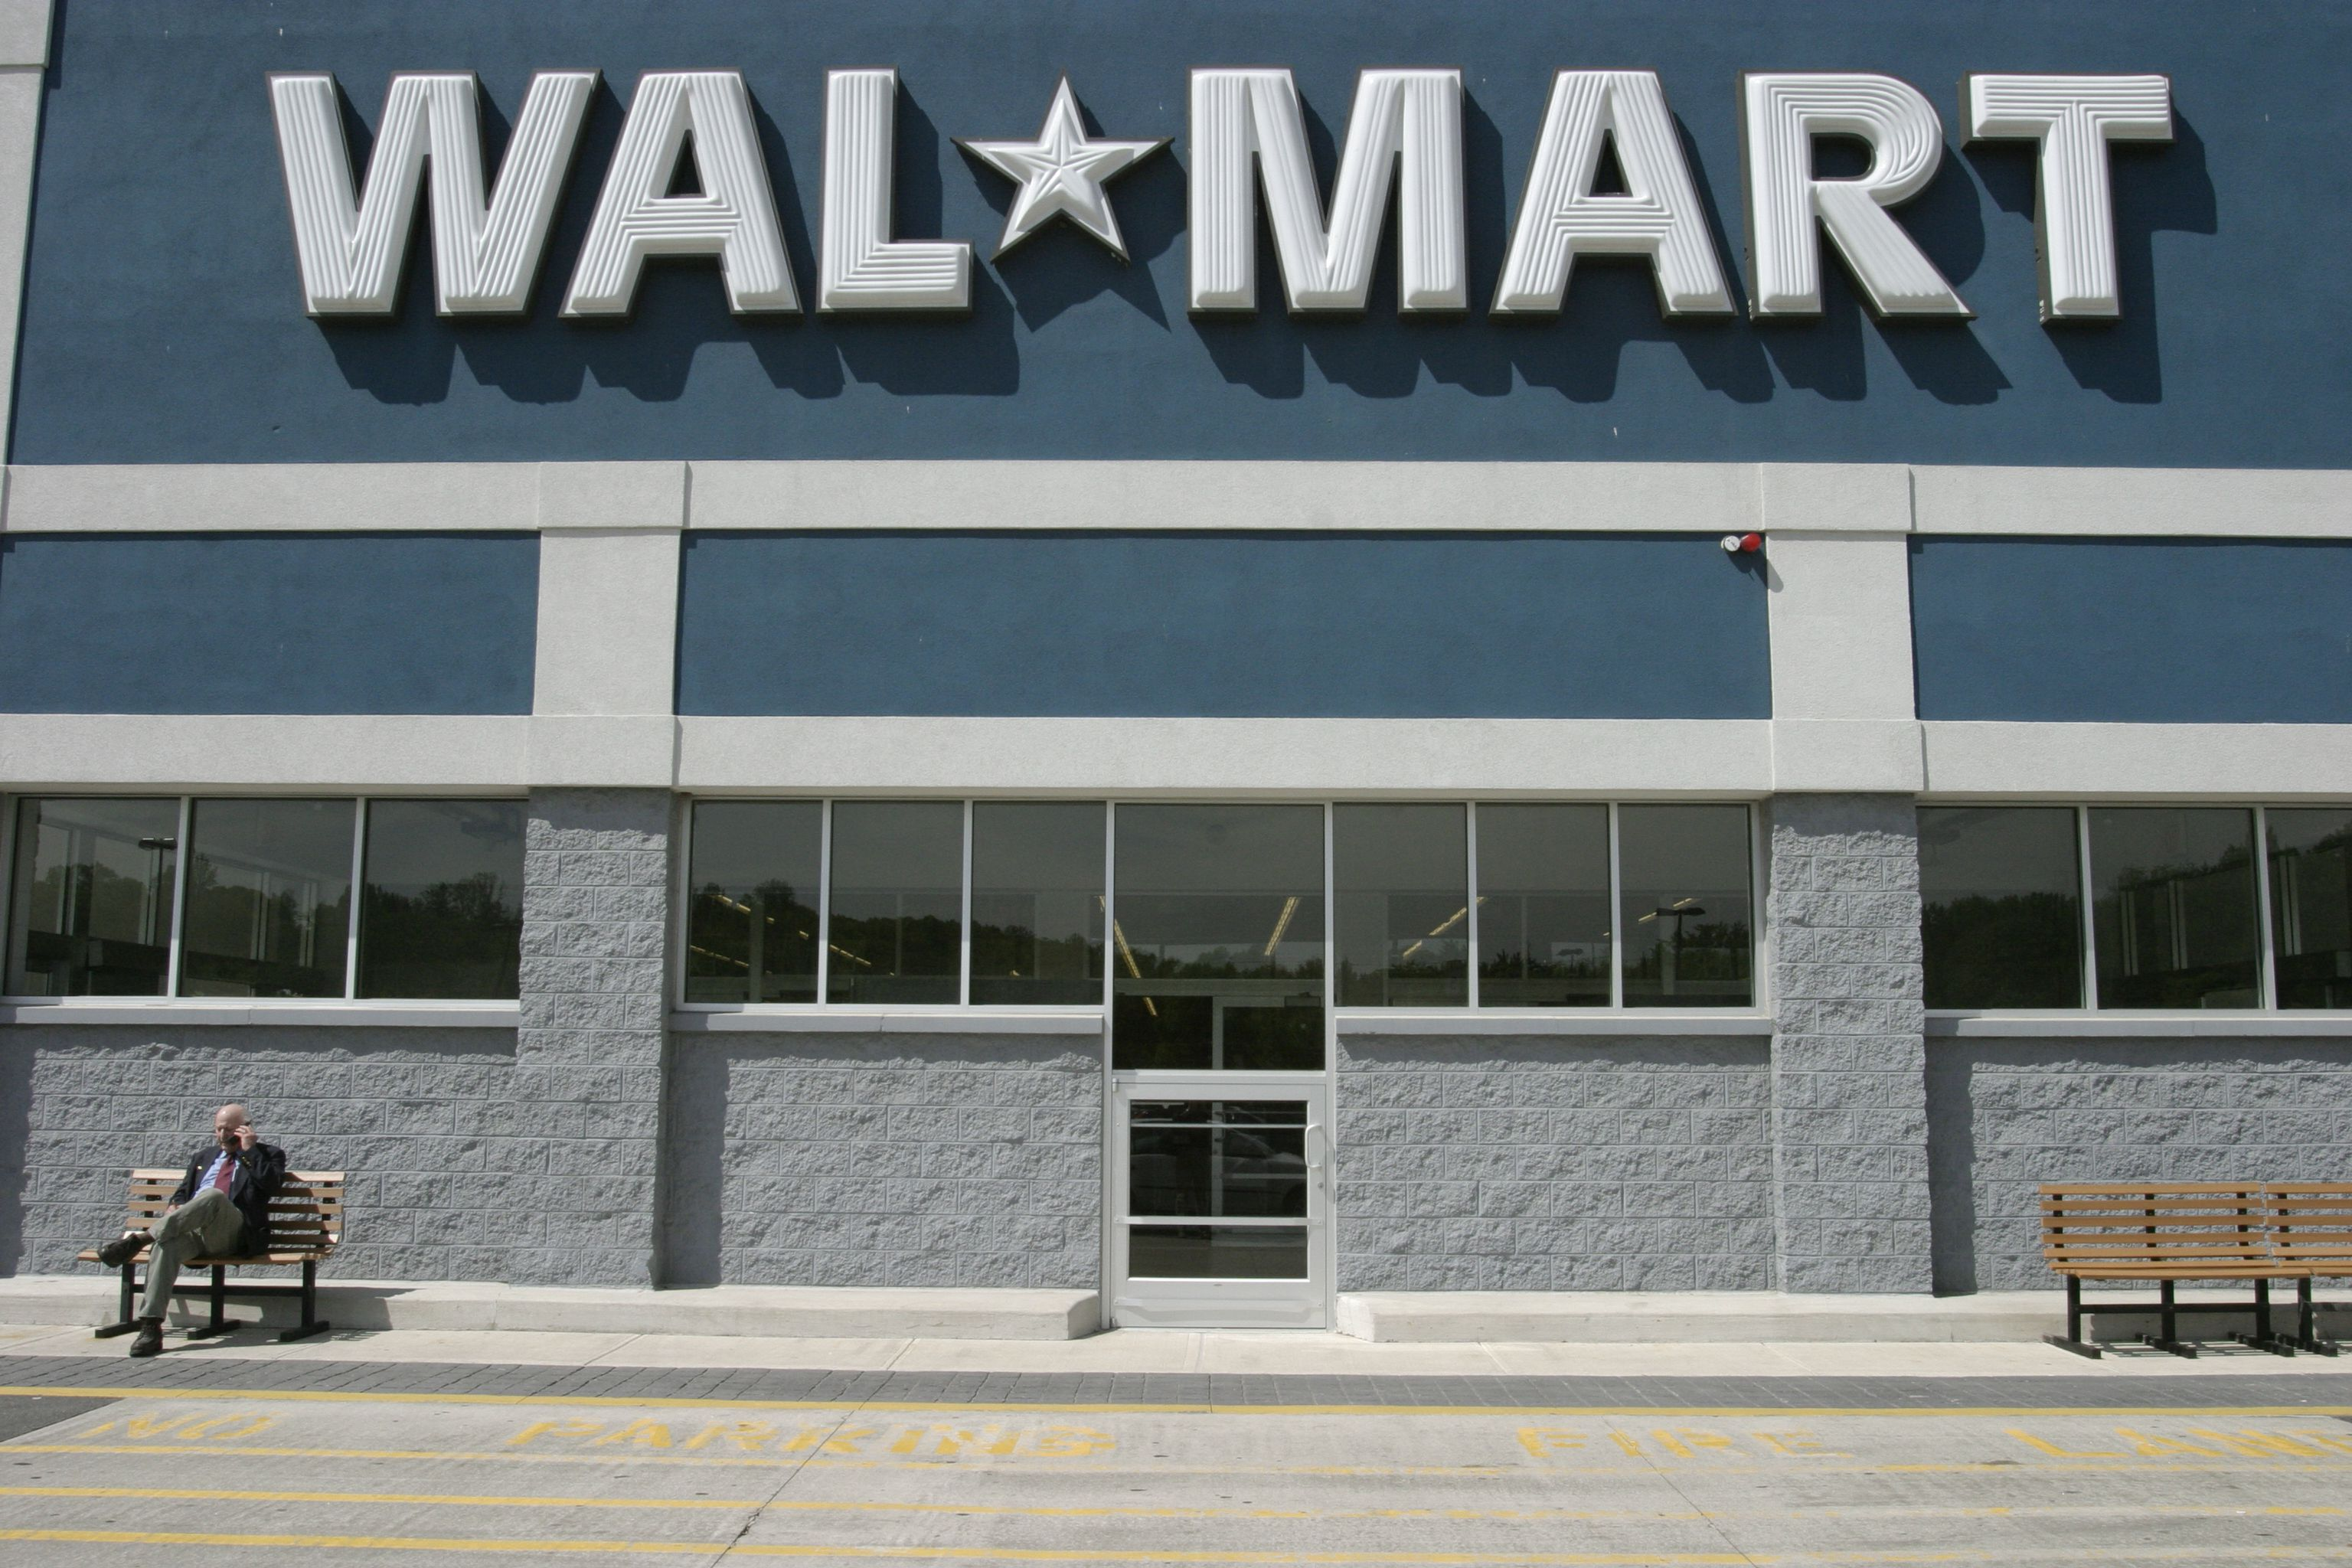 How to get my win number from walmart - How To Get My Win Number From Walmart 78